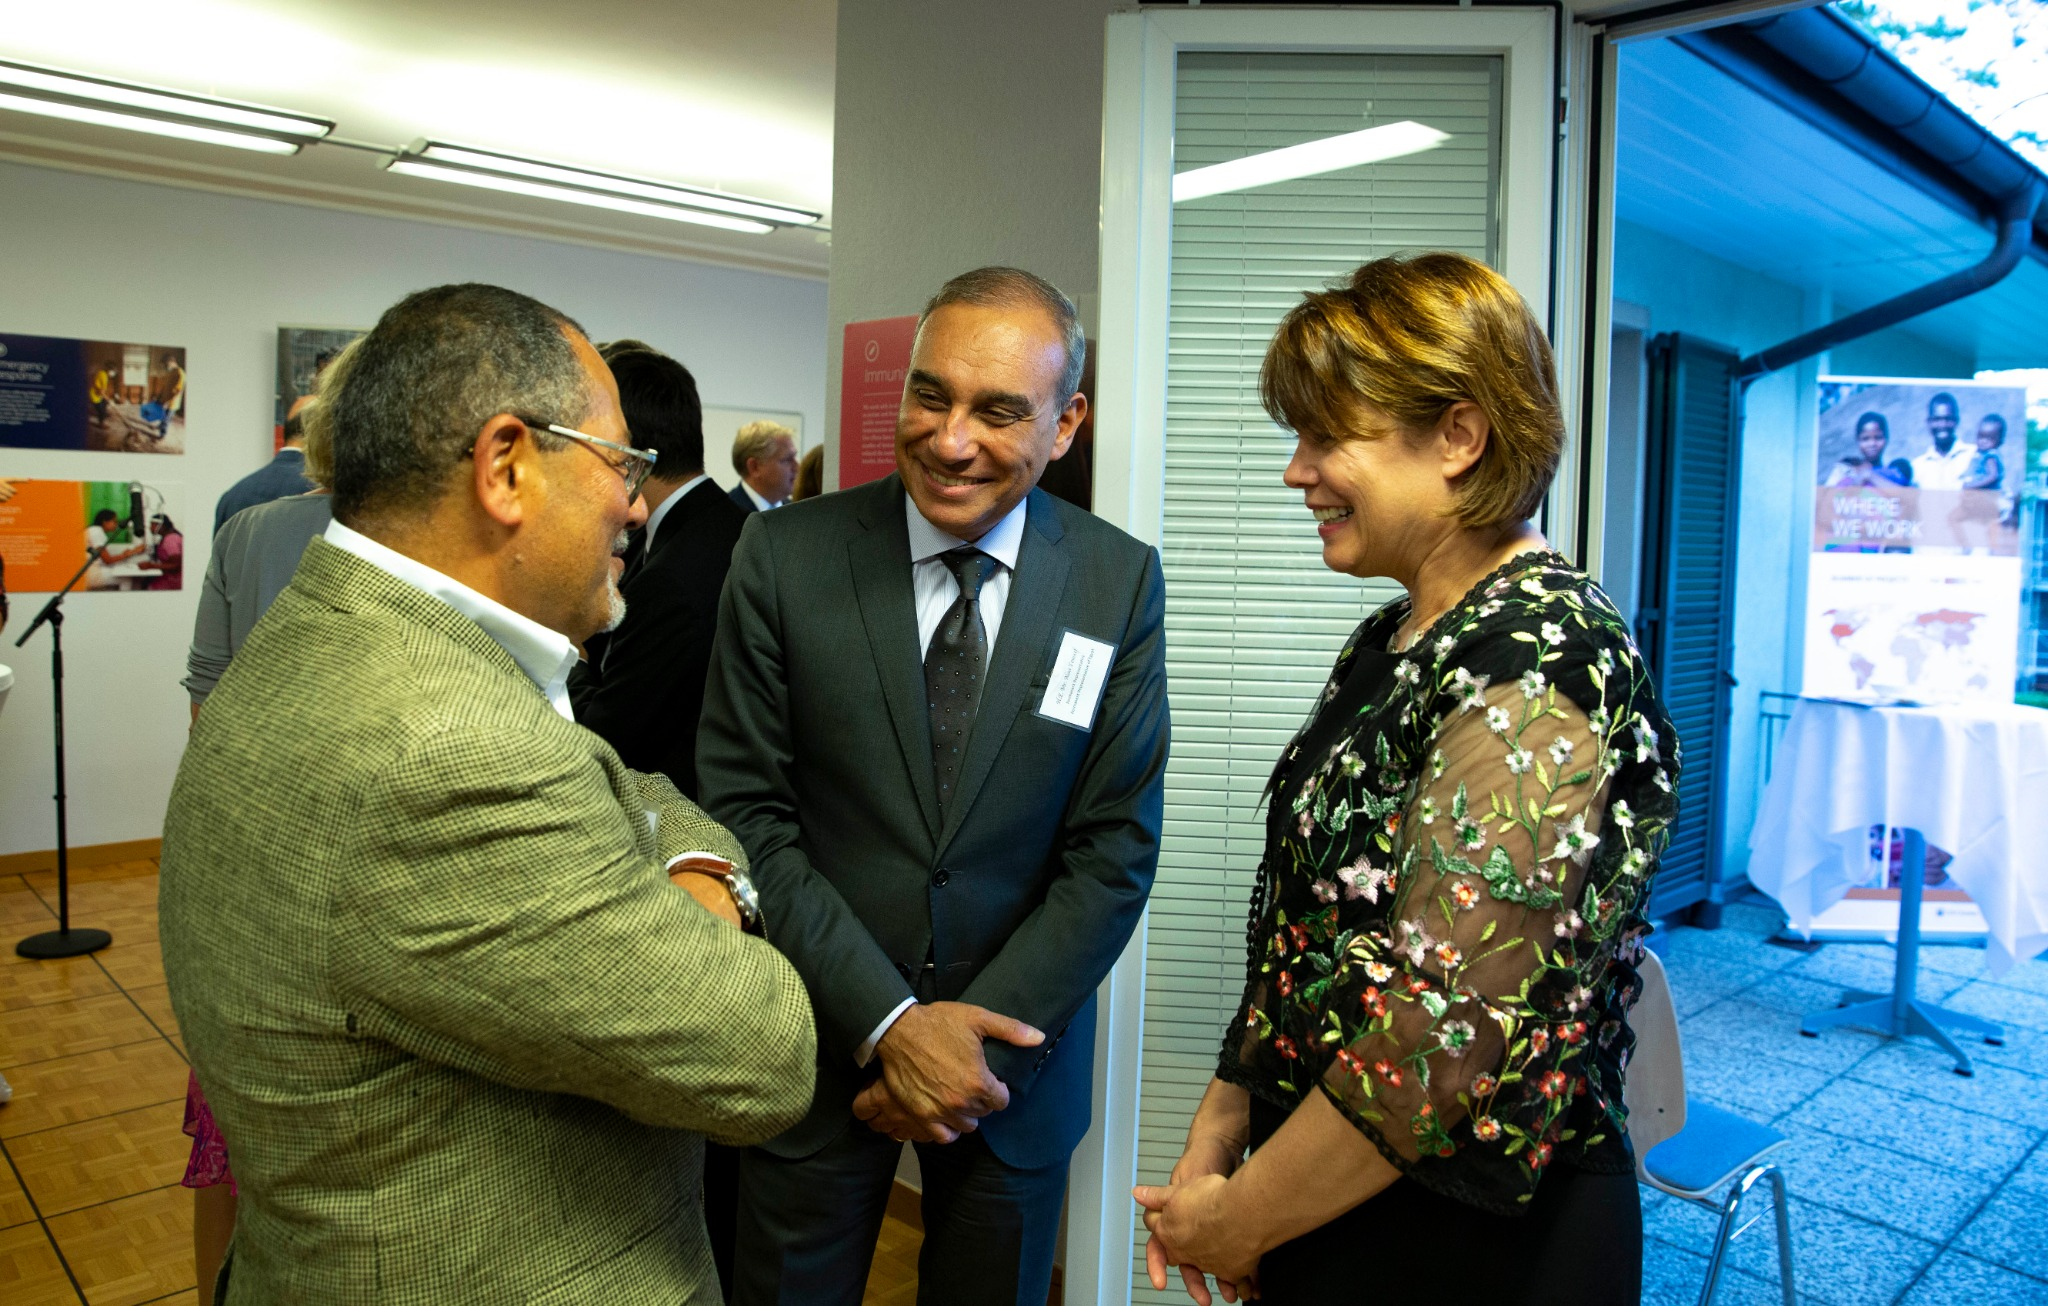 Sister Sharon Eubank, president of Latter-day Saint Charities and first counselor in the Relief Society general presidency, speaks to Ibrahim Salama, left, chief of the U.N. Office of the High Commissioner, and H.E. Mr. Alaa Zakaria Youssef, right, permanent representative of Egypt, while attending a reception in Geneva, Switzerland, on Sept. 16, 2019.